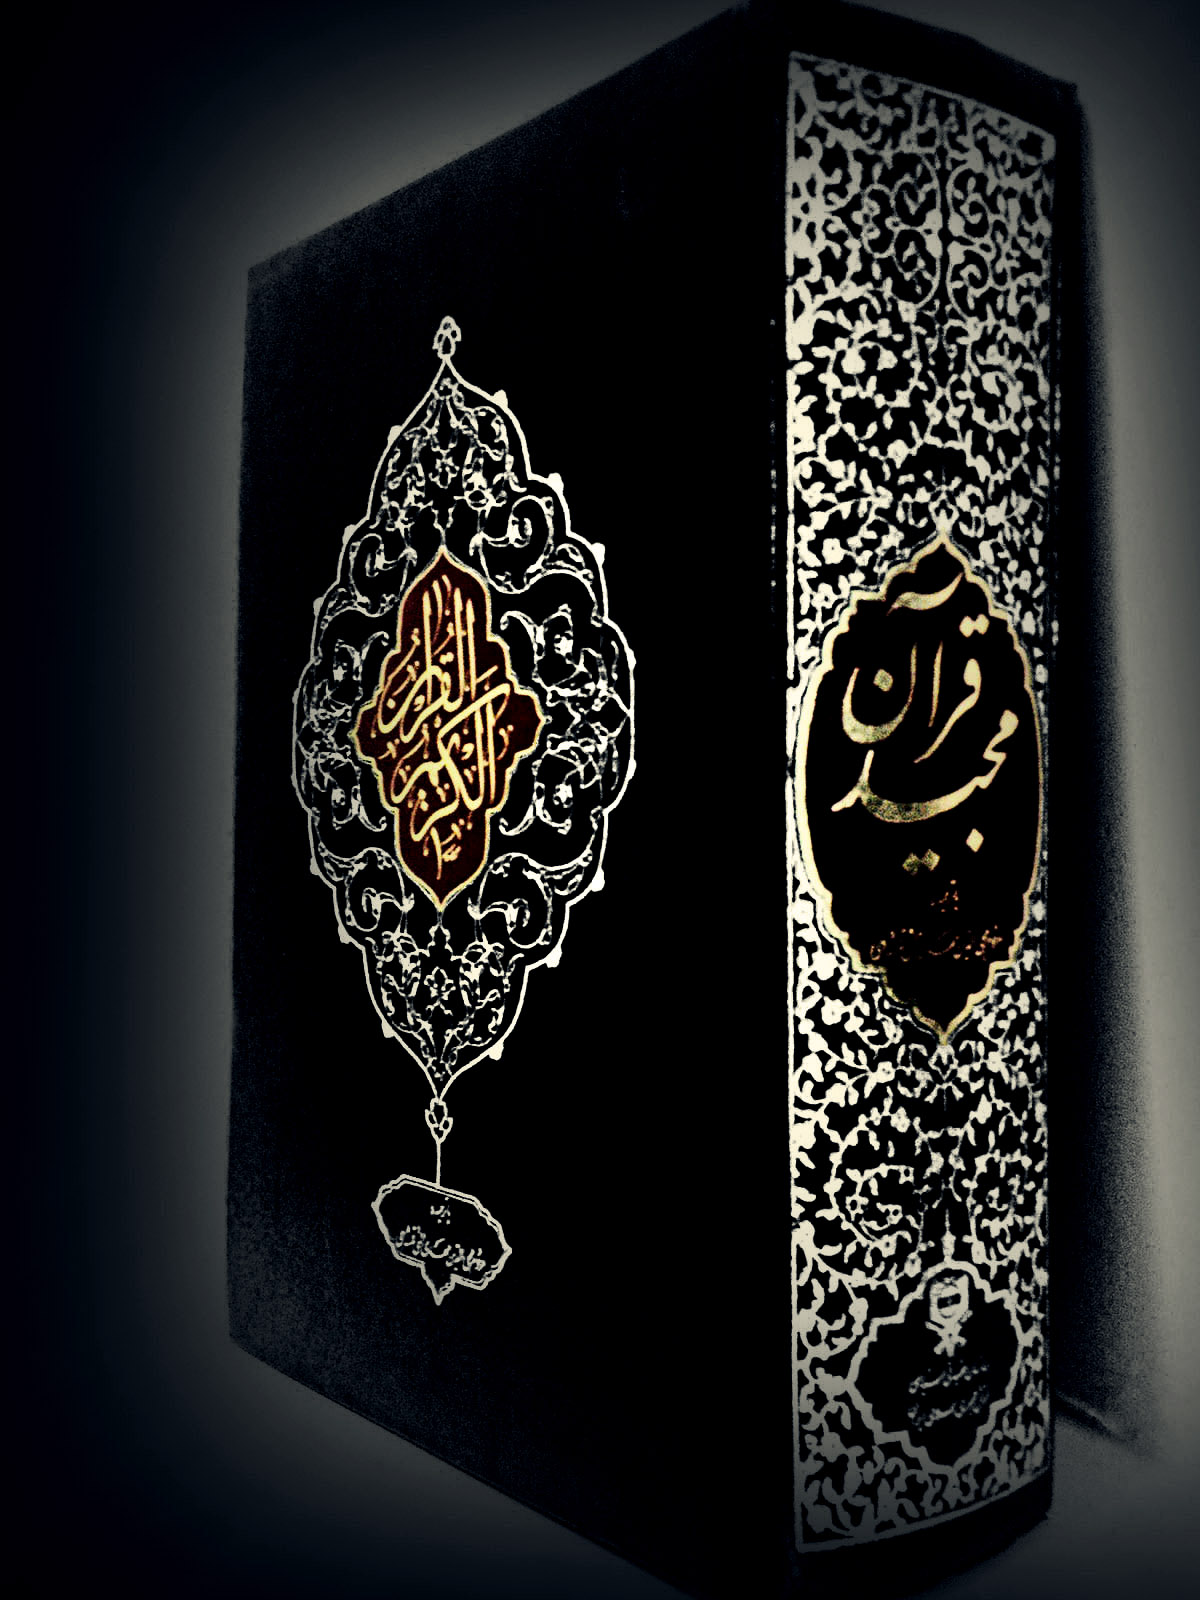 Free Download Islamic Wallpaper Quran 1200x1600 For Your